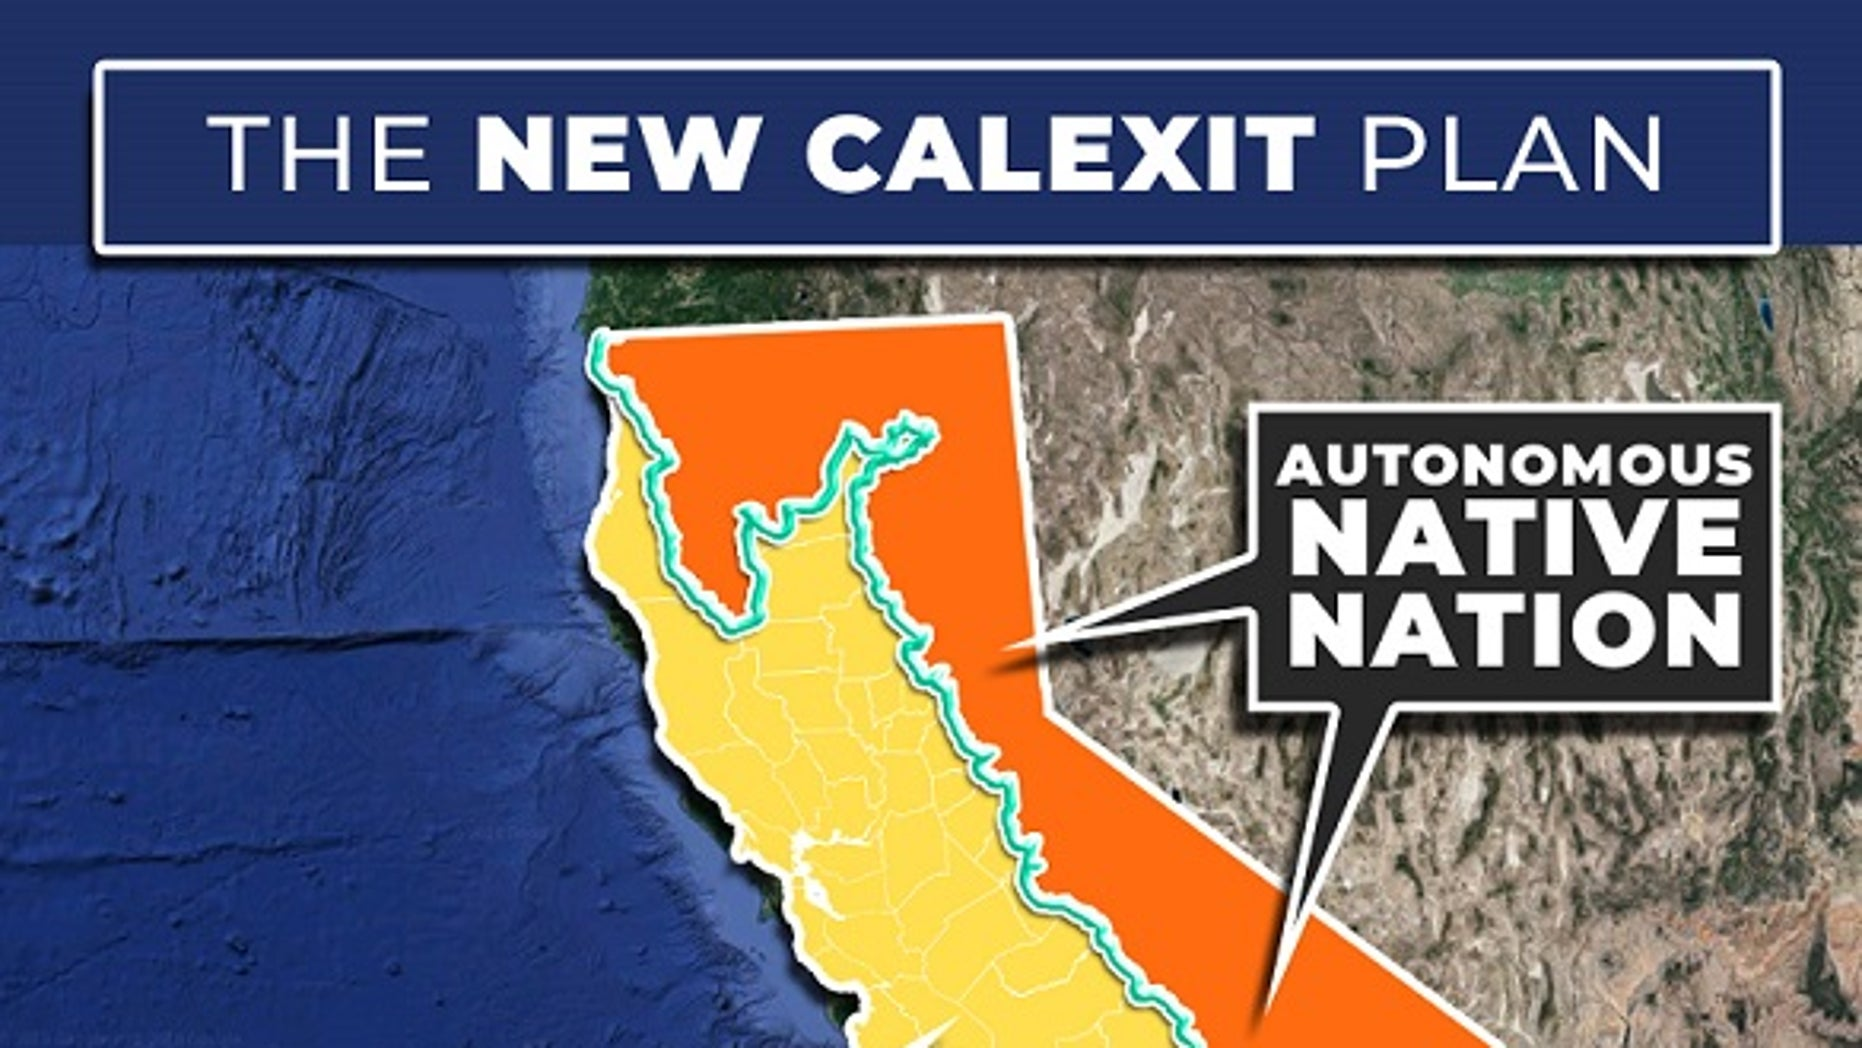 California secessionists plan to retool their movement this week to include a large-scale land giveaway to Native Americans.